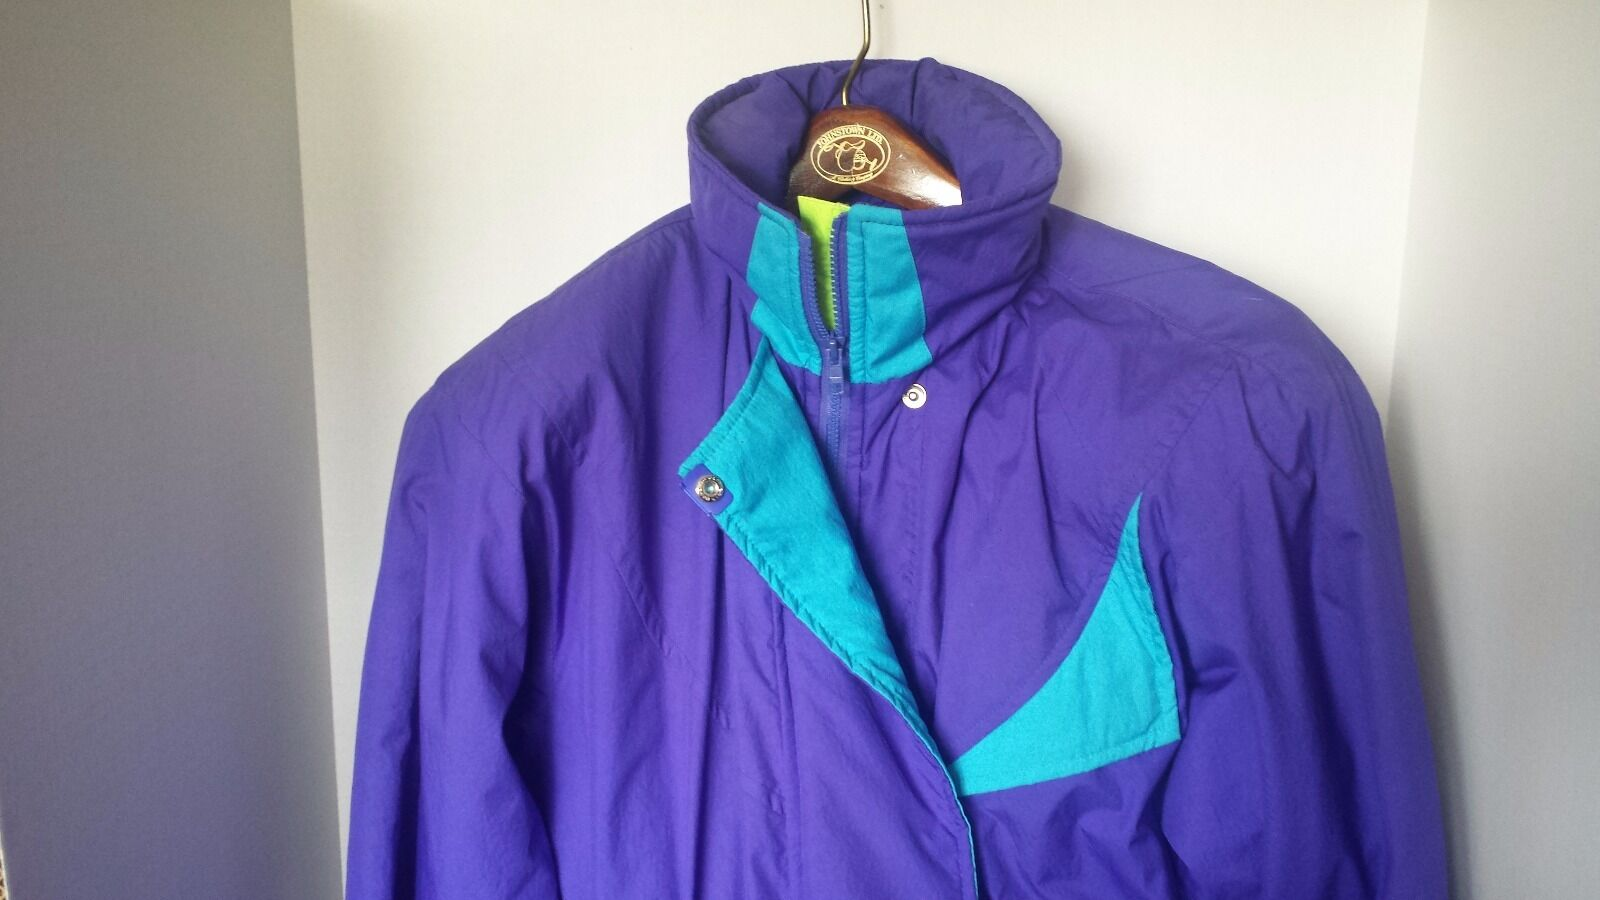 OBERMEYER SNOW SUIT Vintage One Piece Ski Suit Purple Neon  Green bluee Ladies 10  fast shipping to you